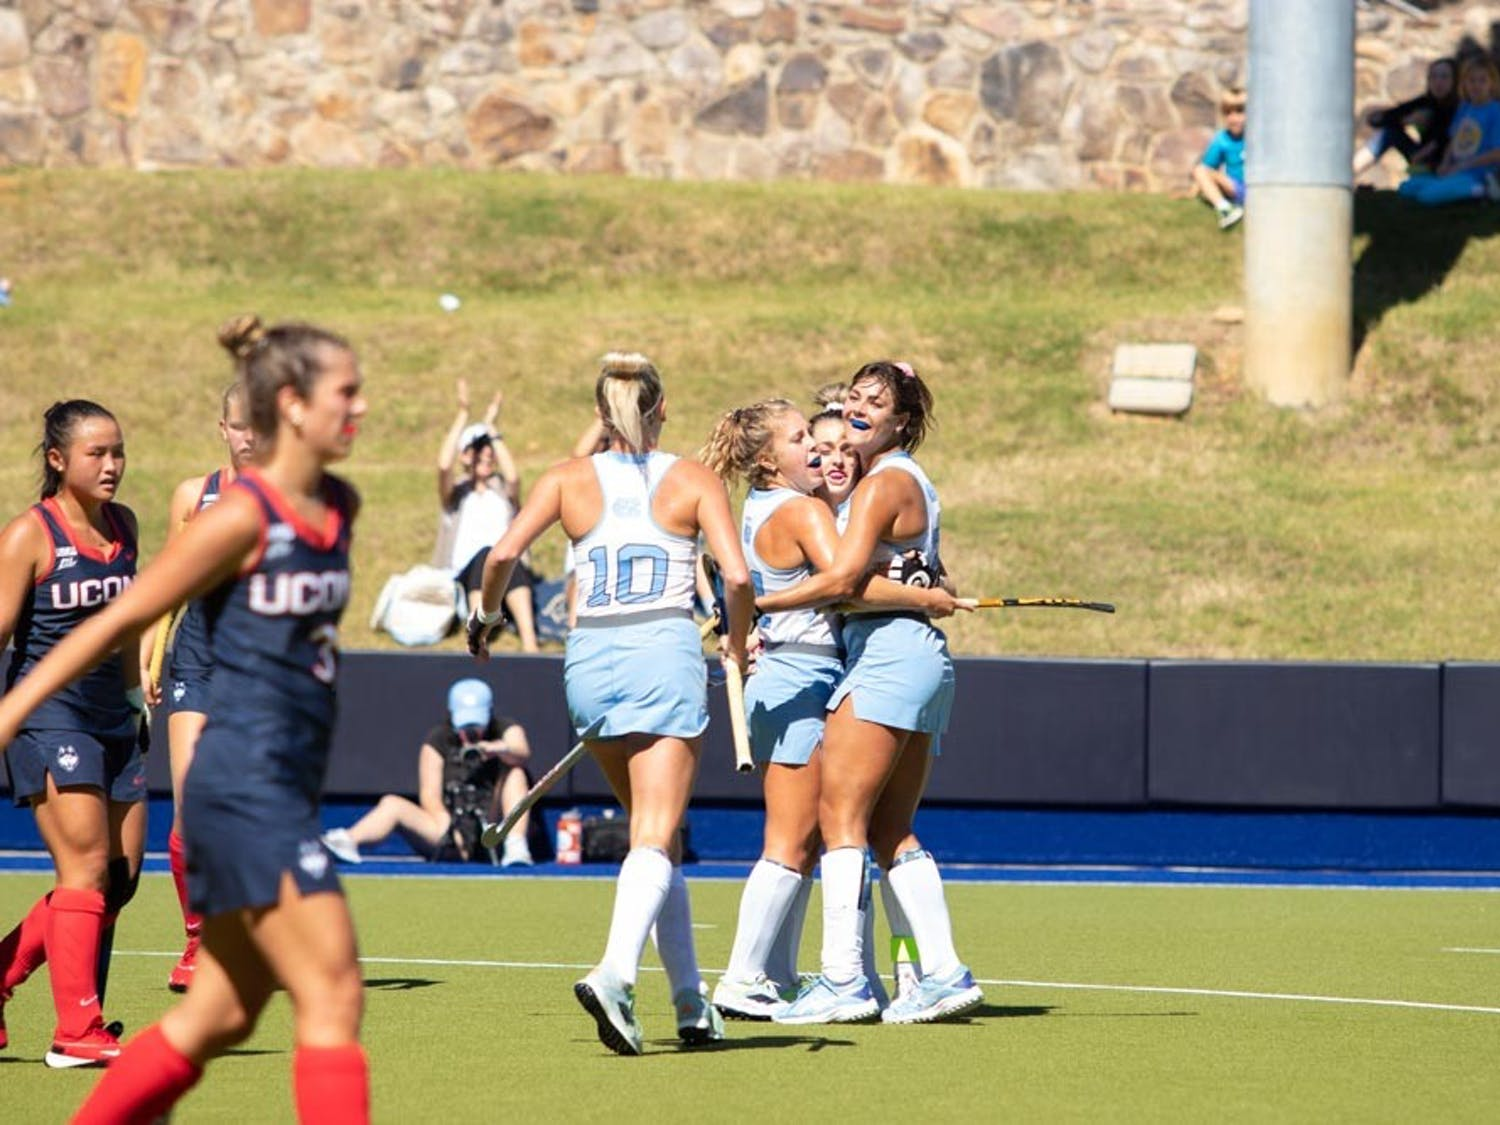 UNC's field hockey team celebrates a goal during their Sept. 26 match against UConn. UNC won 3-1